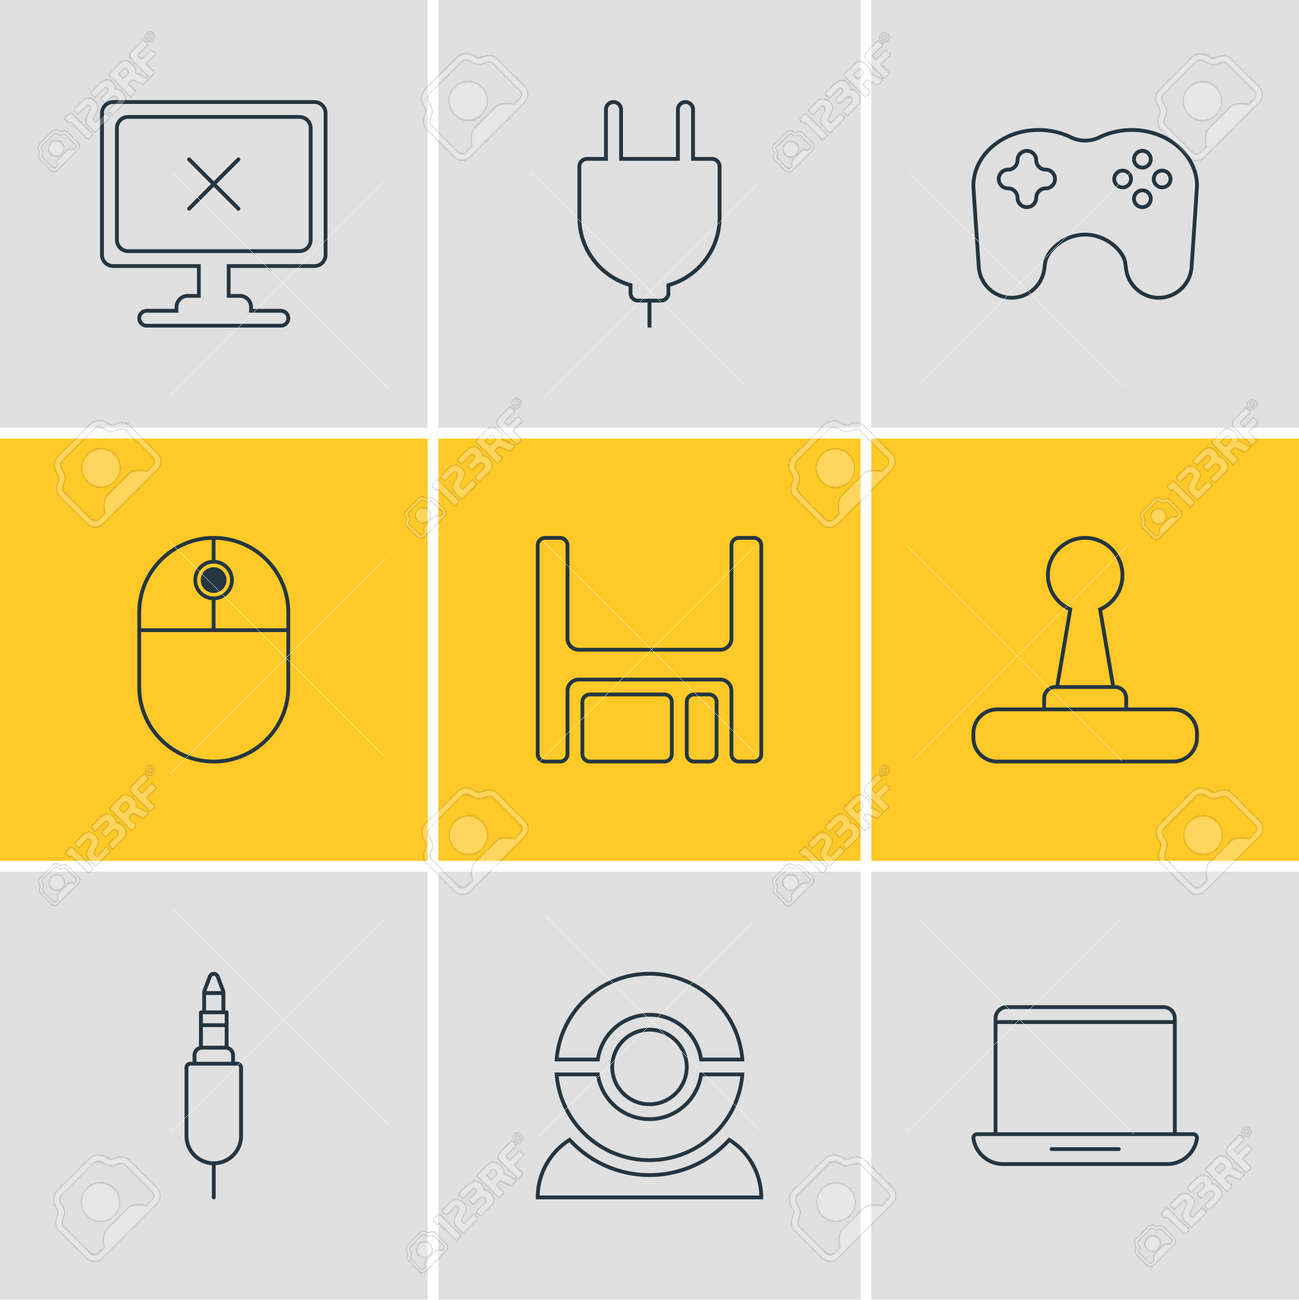 illustration of 9 notebook icons line style. Editable set of floppy disk, plug, game controller and other icon elements. - 157462765